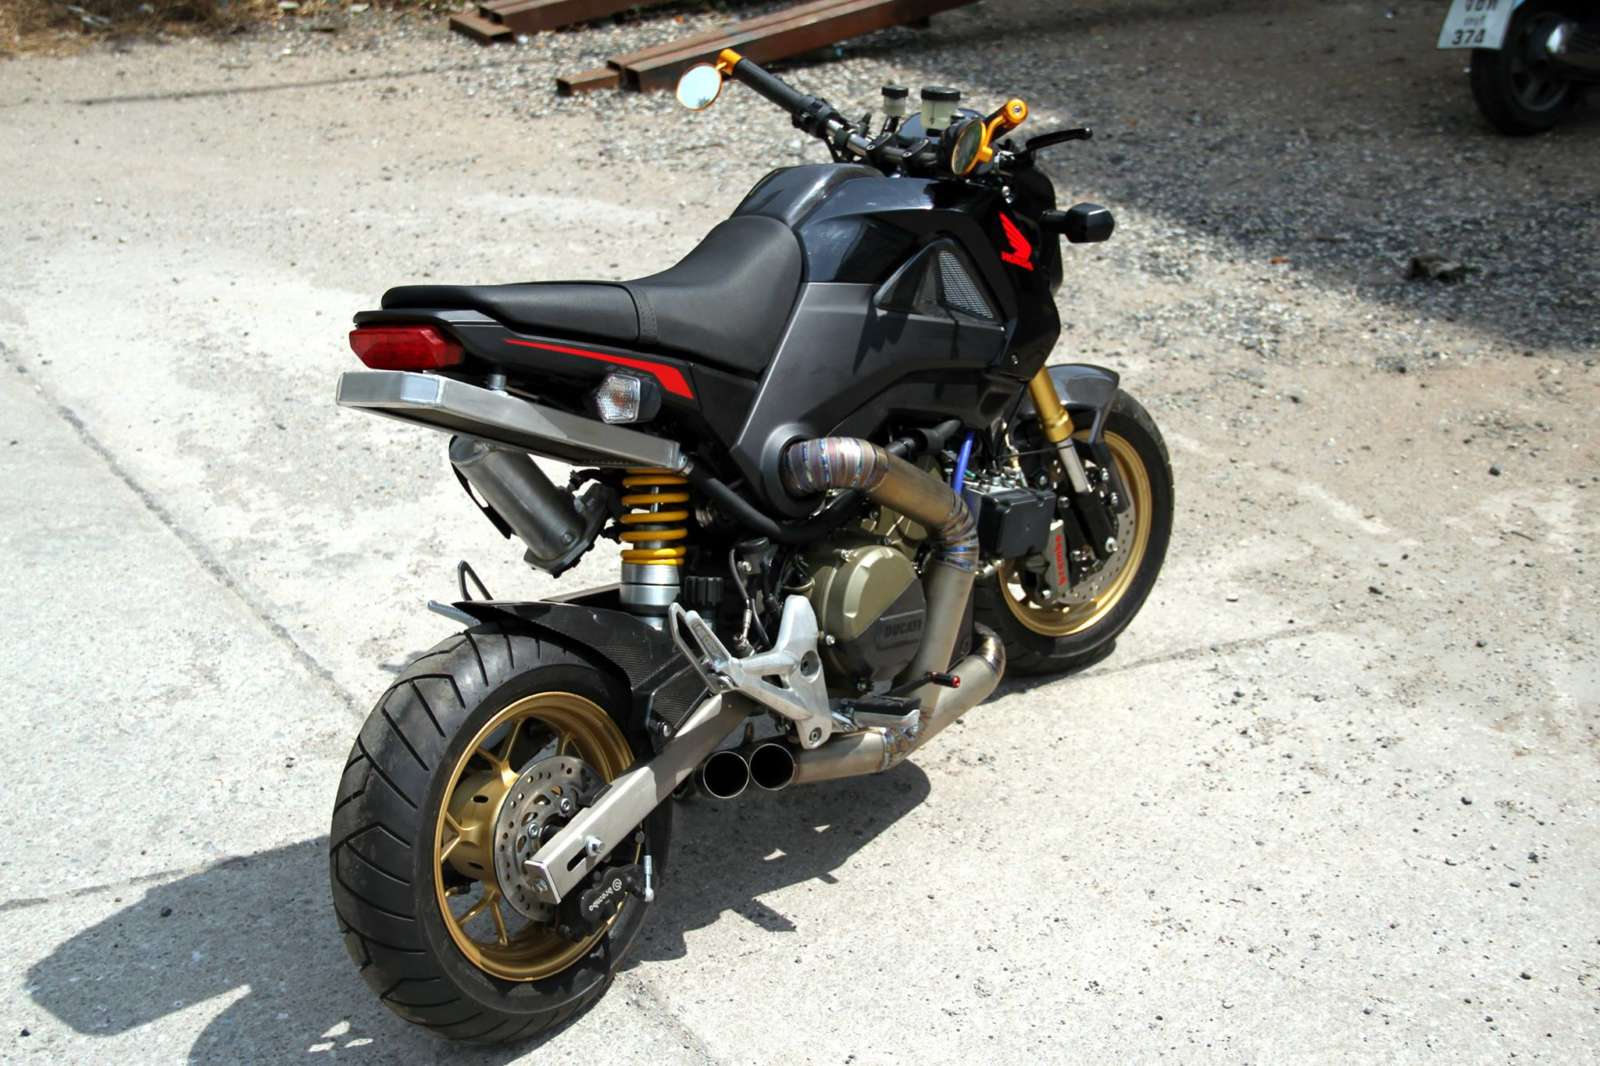 Honda Grom Build >> Video: 205 HP Honda Grom with a Ducati Panigale R engine is borderline psychotic | Motoroids